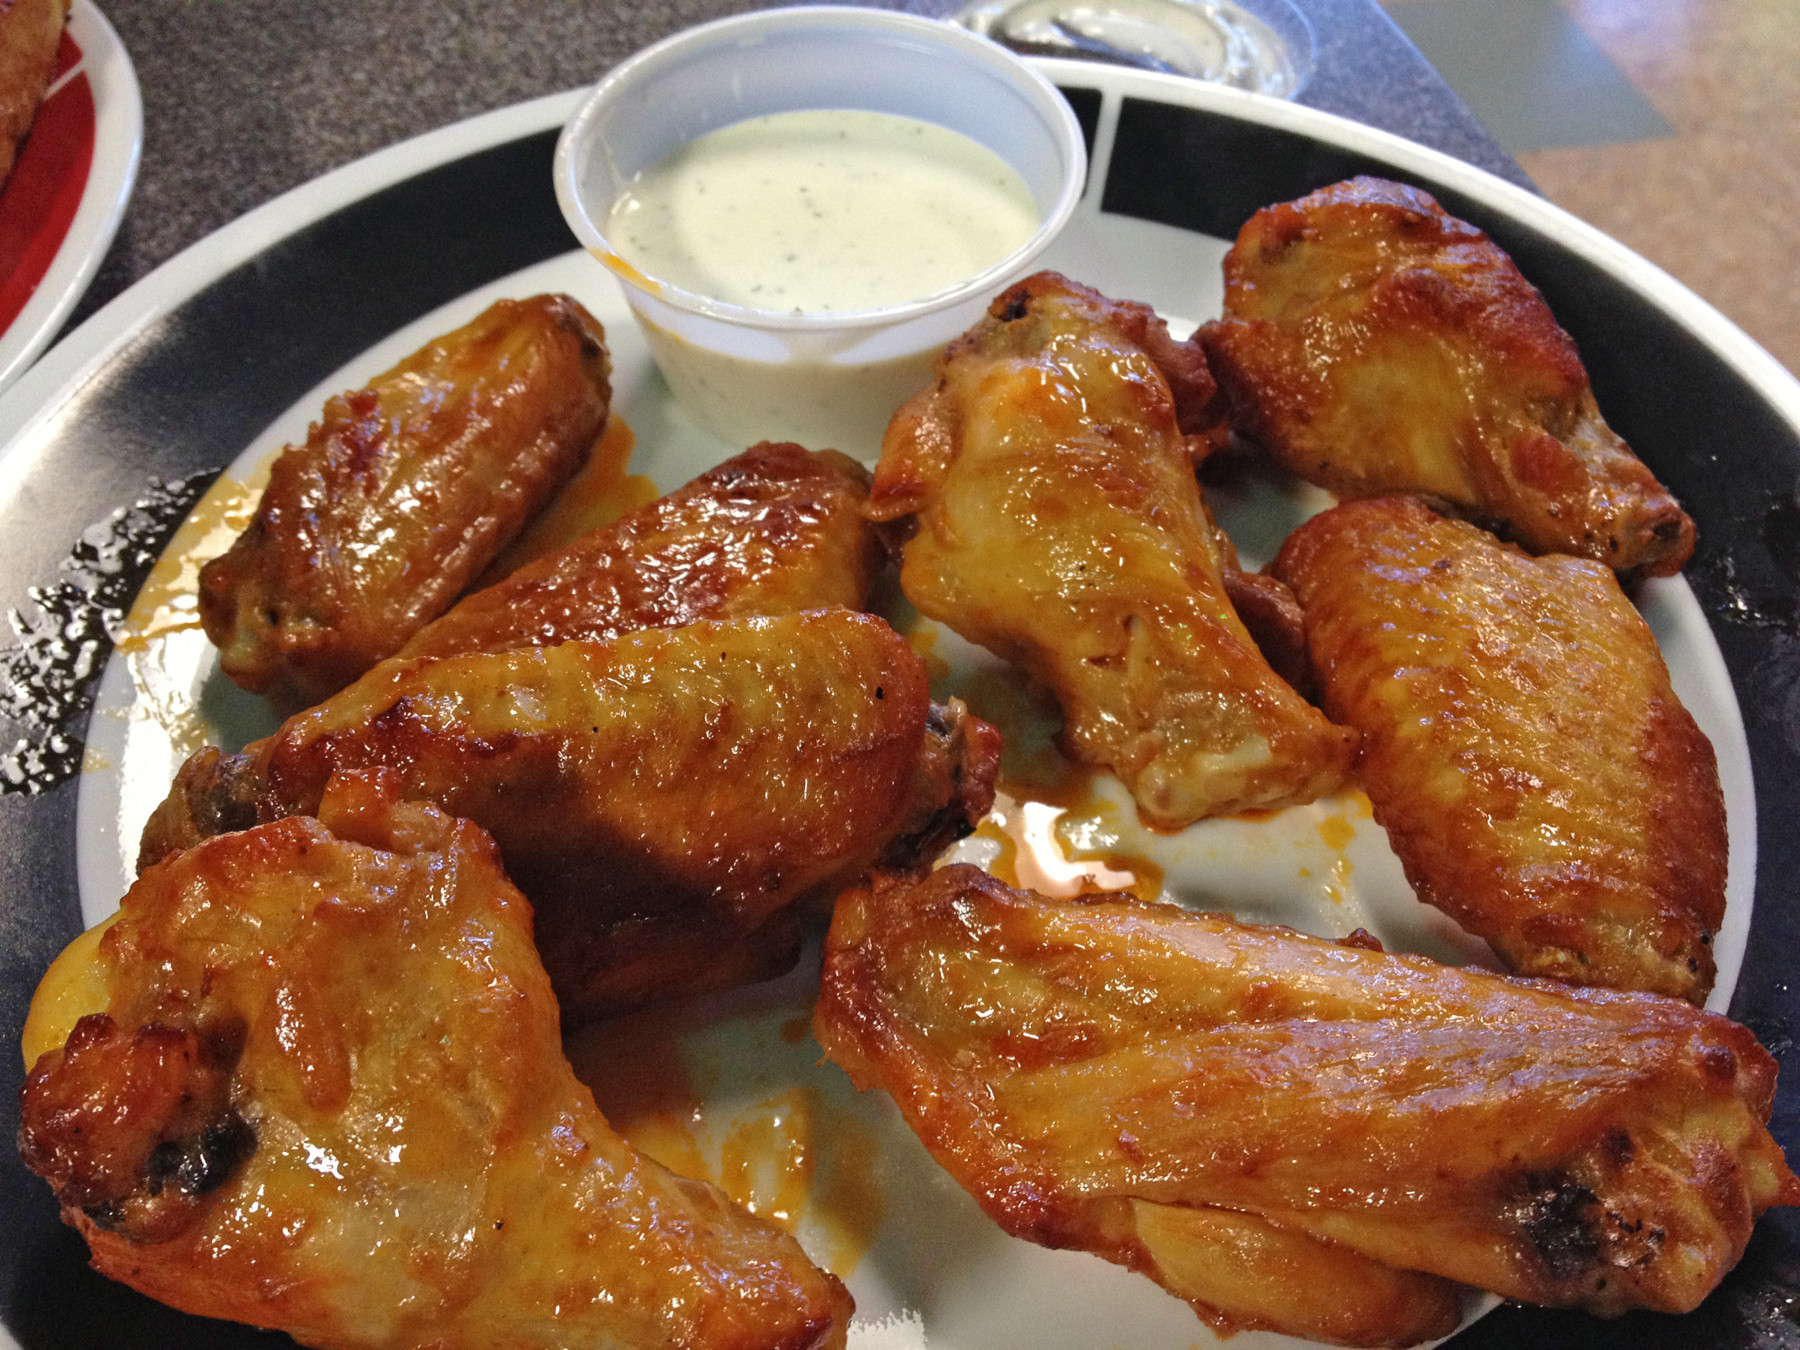 Guido Spoonpipe's wings — available in plain, BBQ, sweet BBQ, mild and hot — are lightly breaded and baked, not fried.